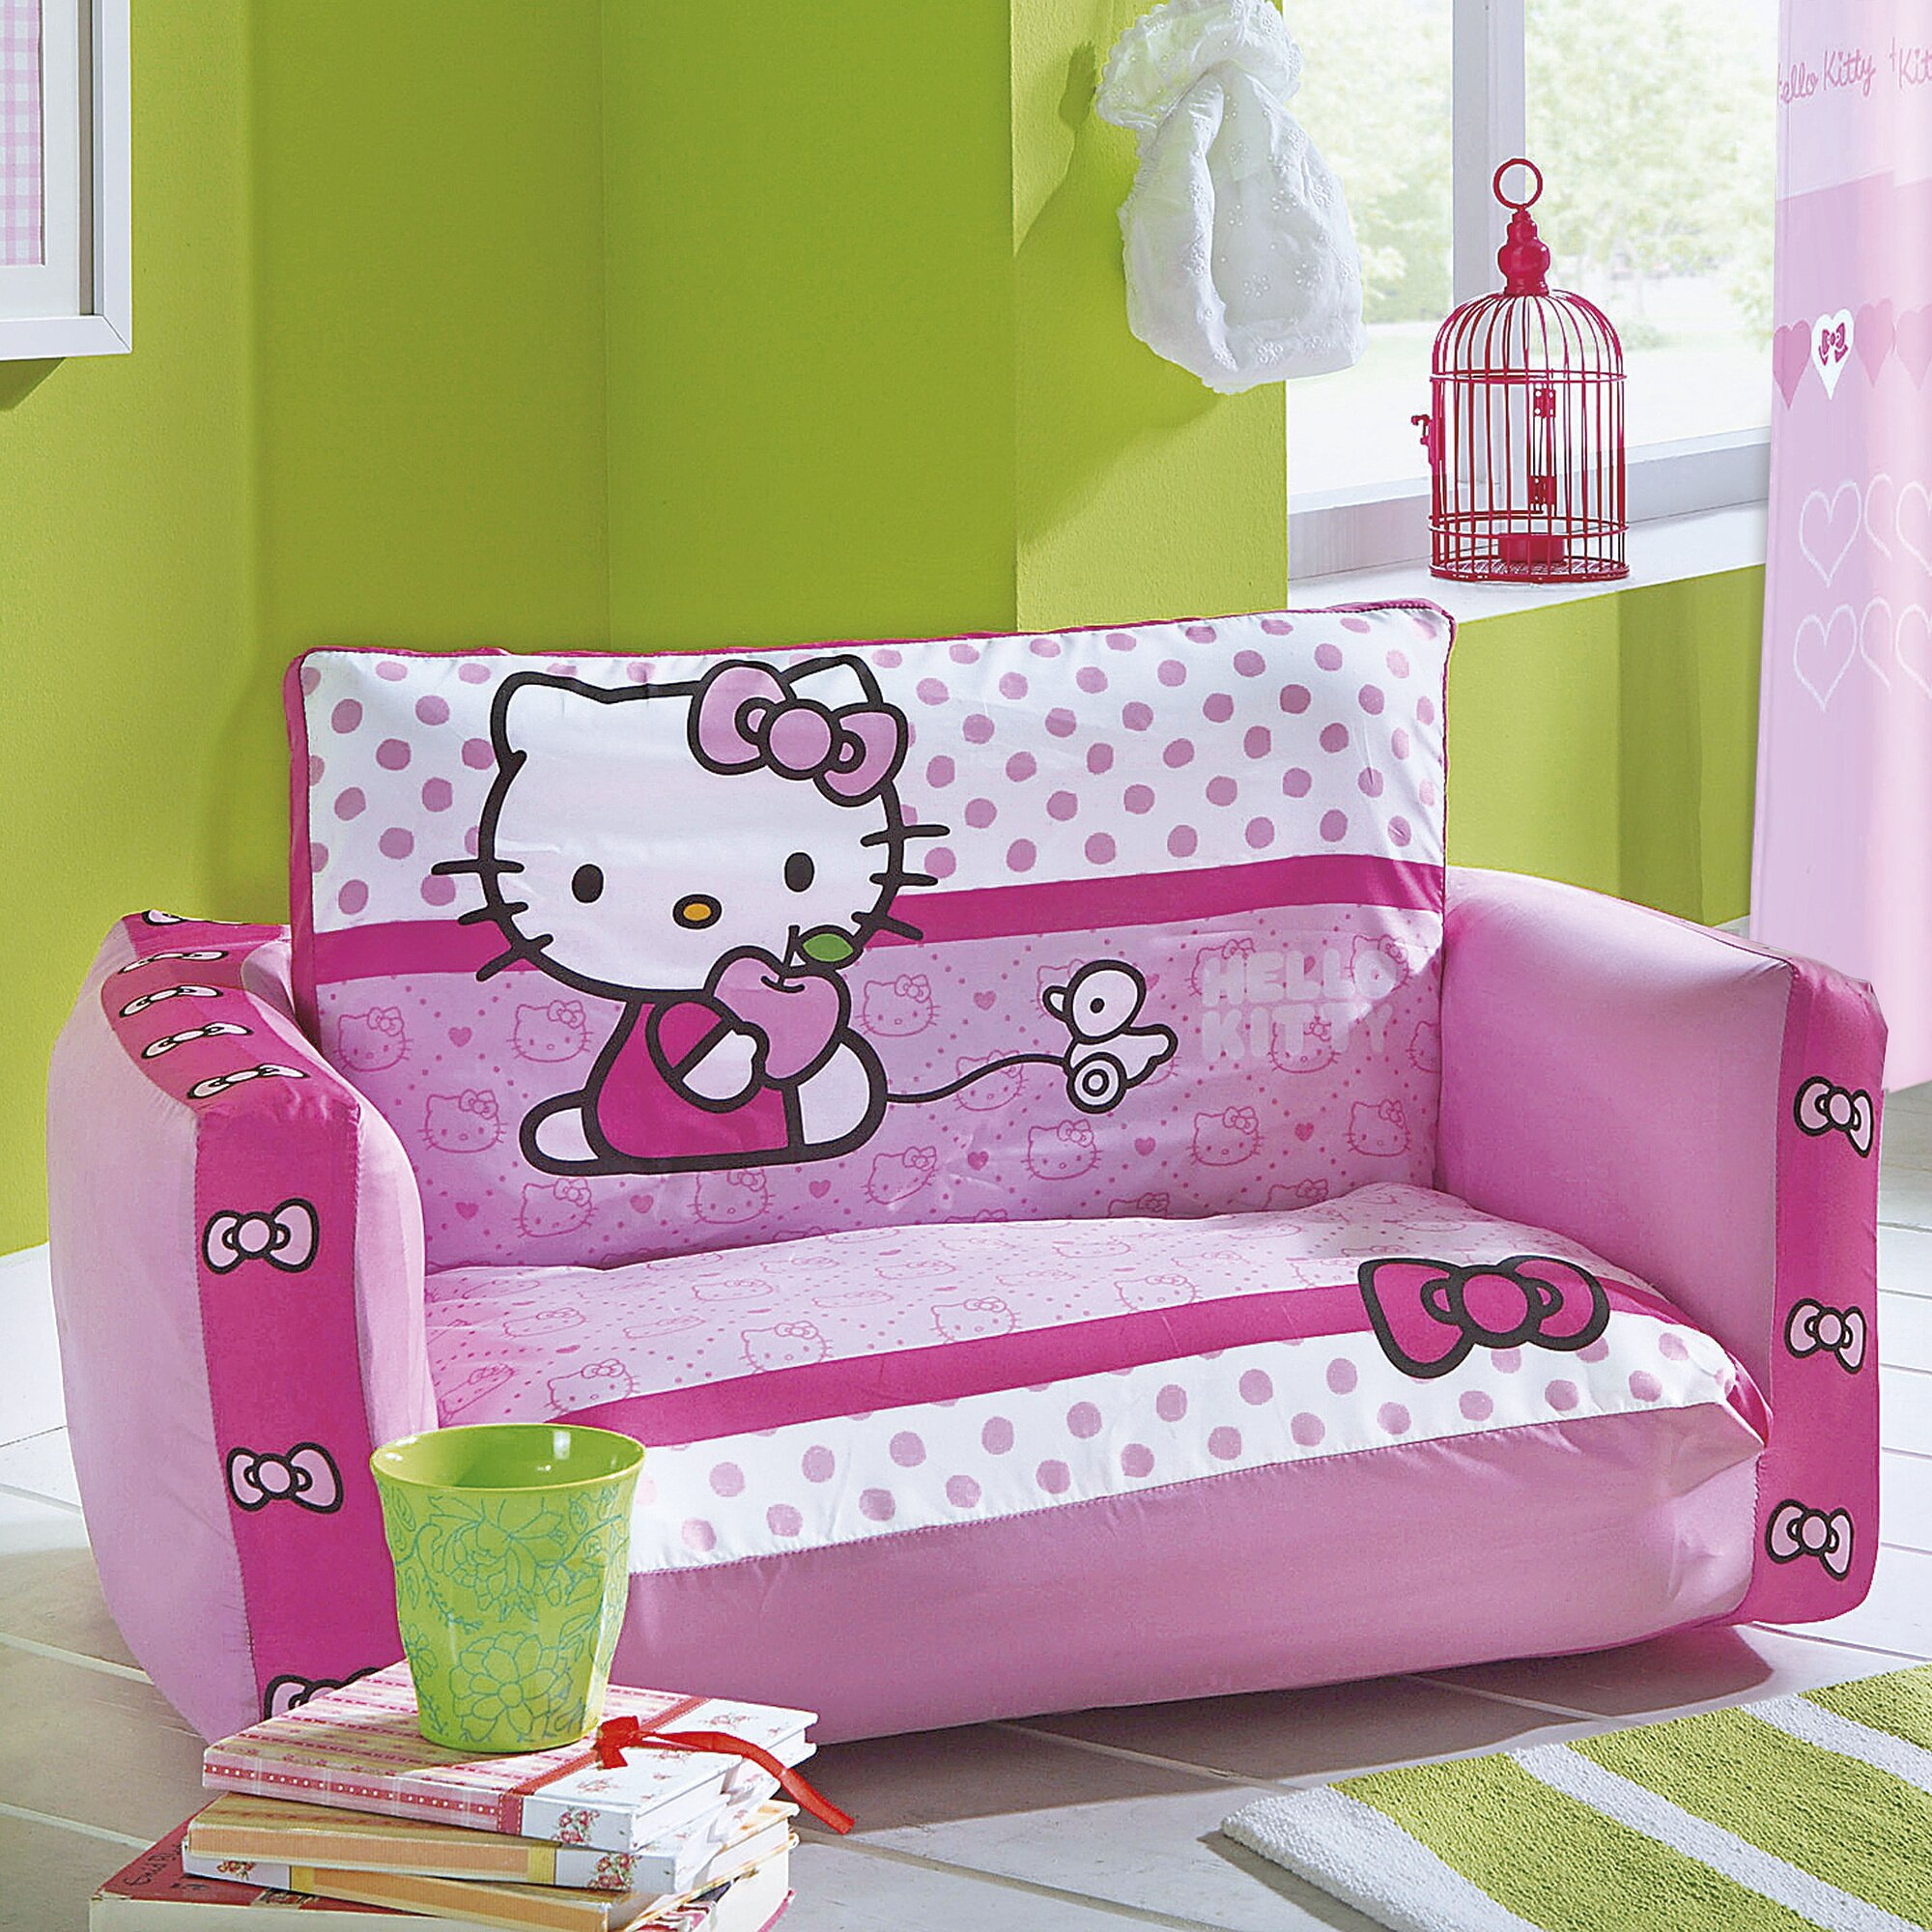 les fauteuils enfants chambre enfants. Black Bedroom Furniture Sets. Home Design Ideas